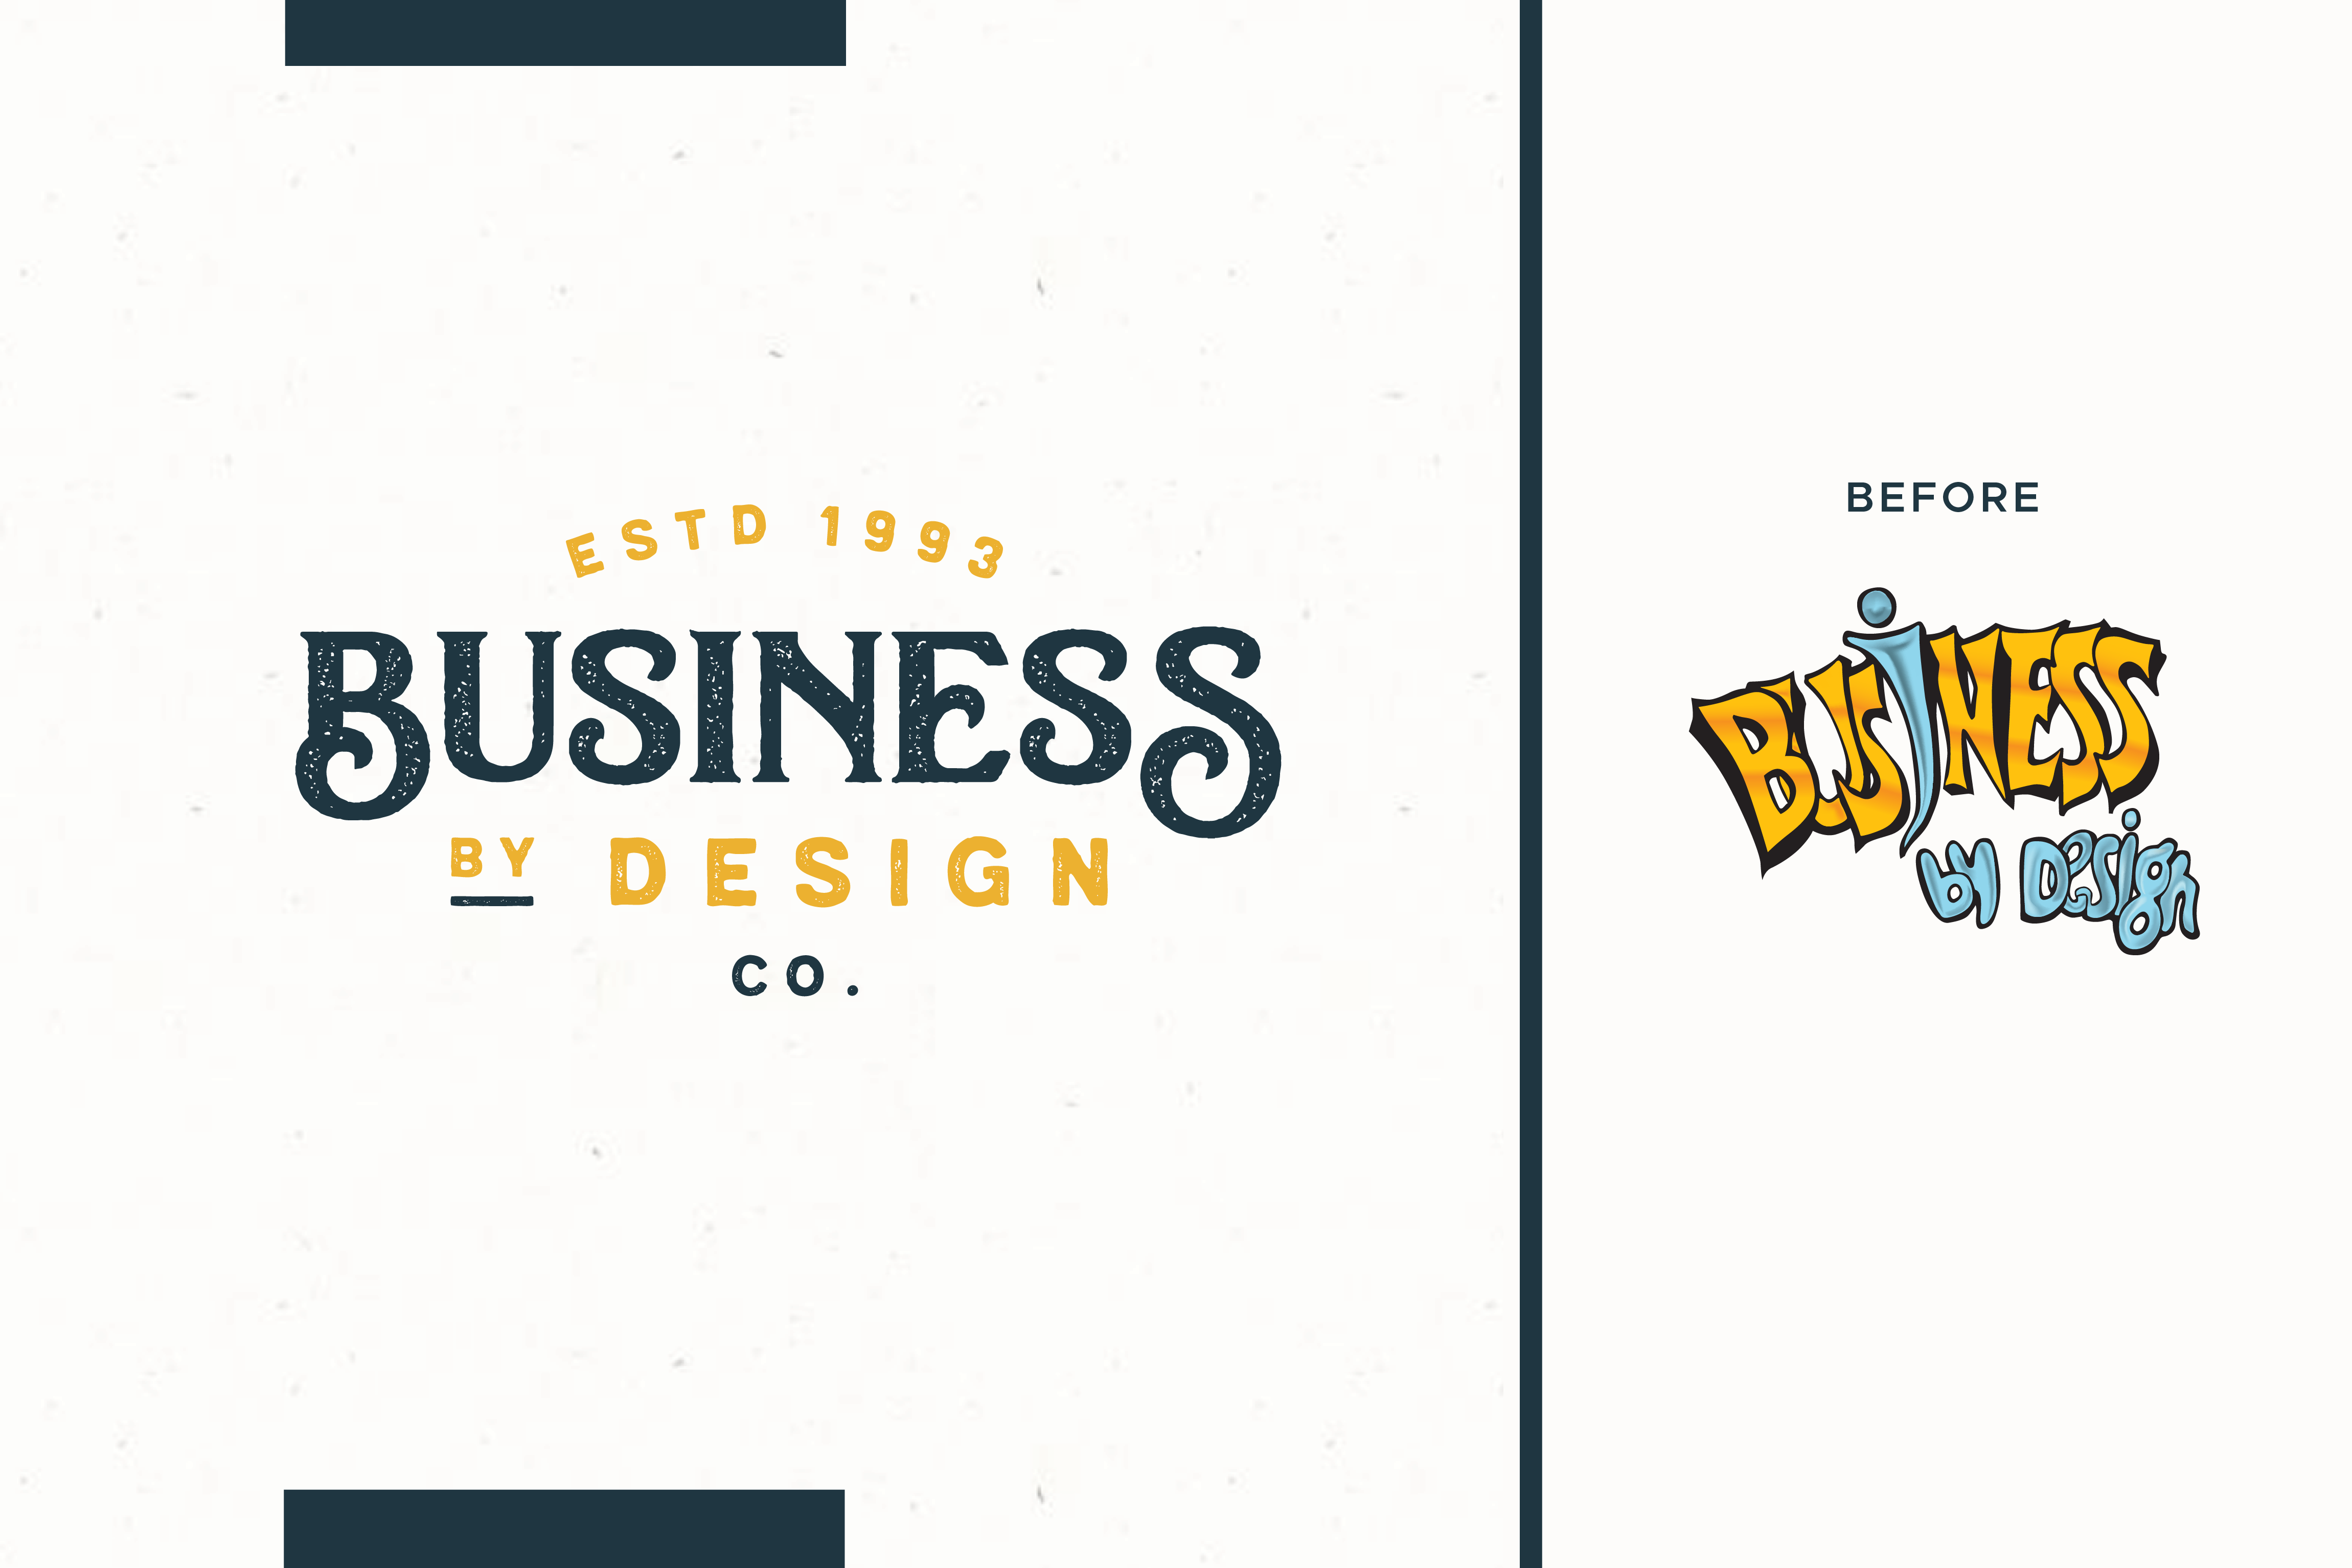 Business By Design Steps Up Branding